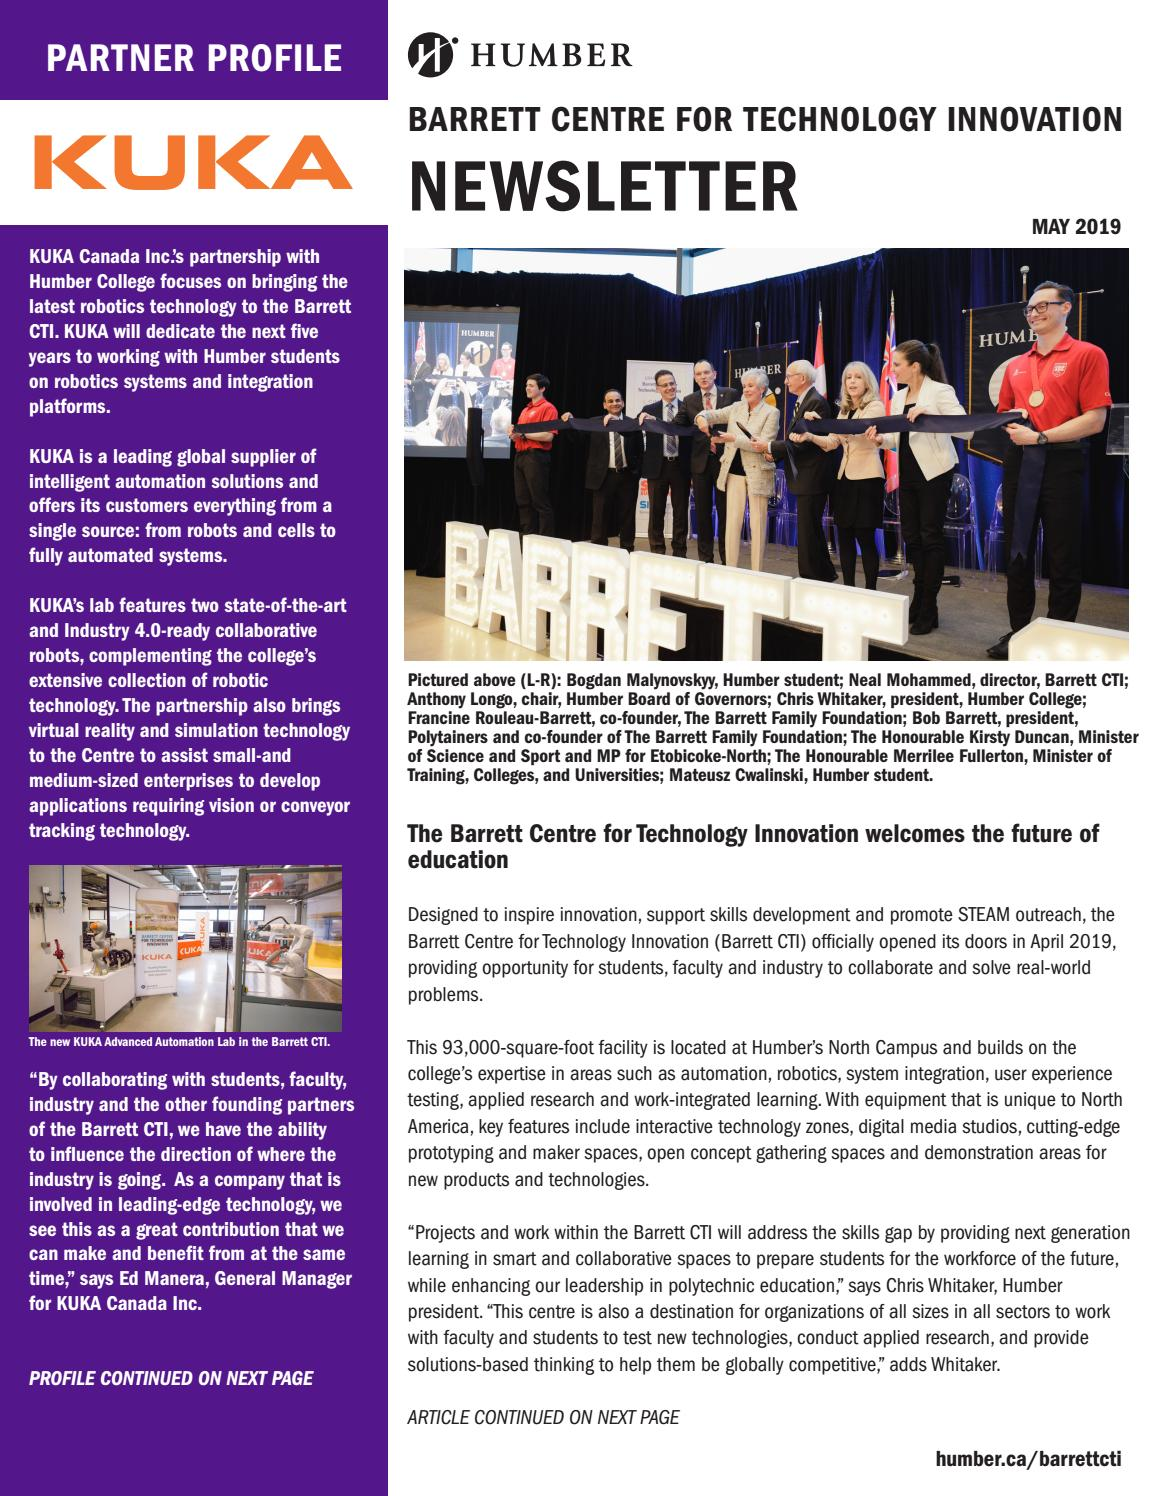 Barrett Cti Newsletter May 2019 By Humber College Applied Research Innovation Issuu